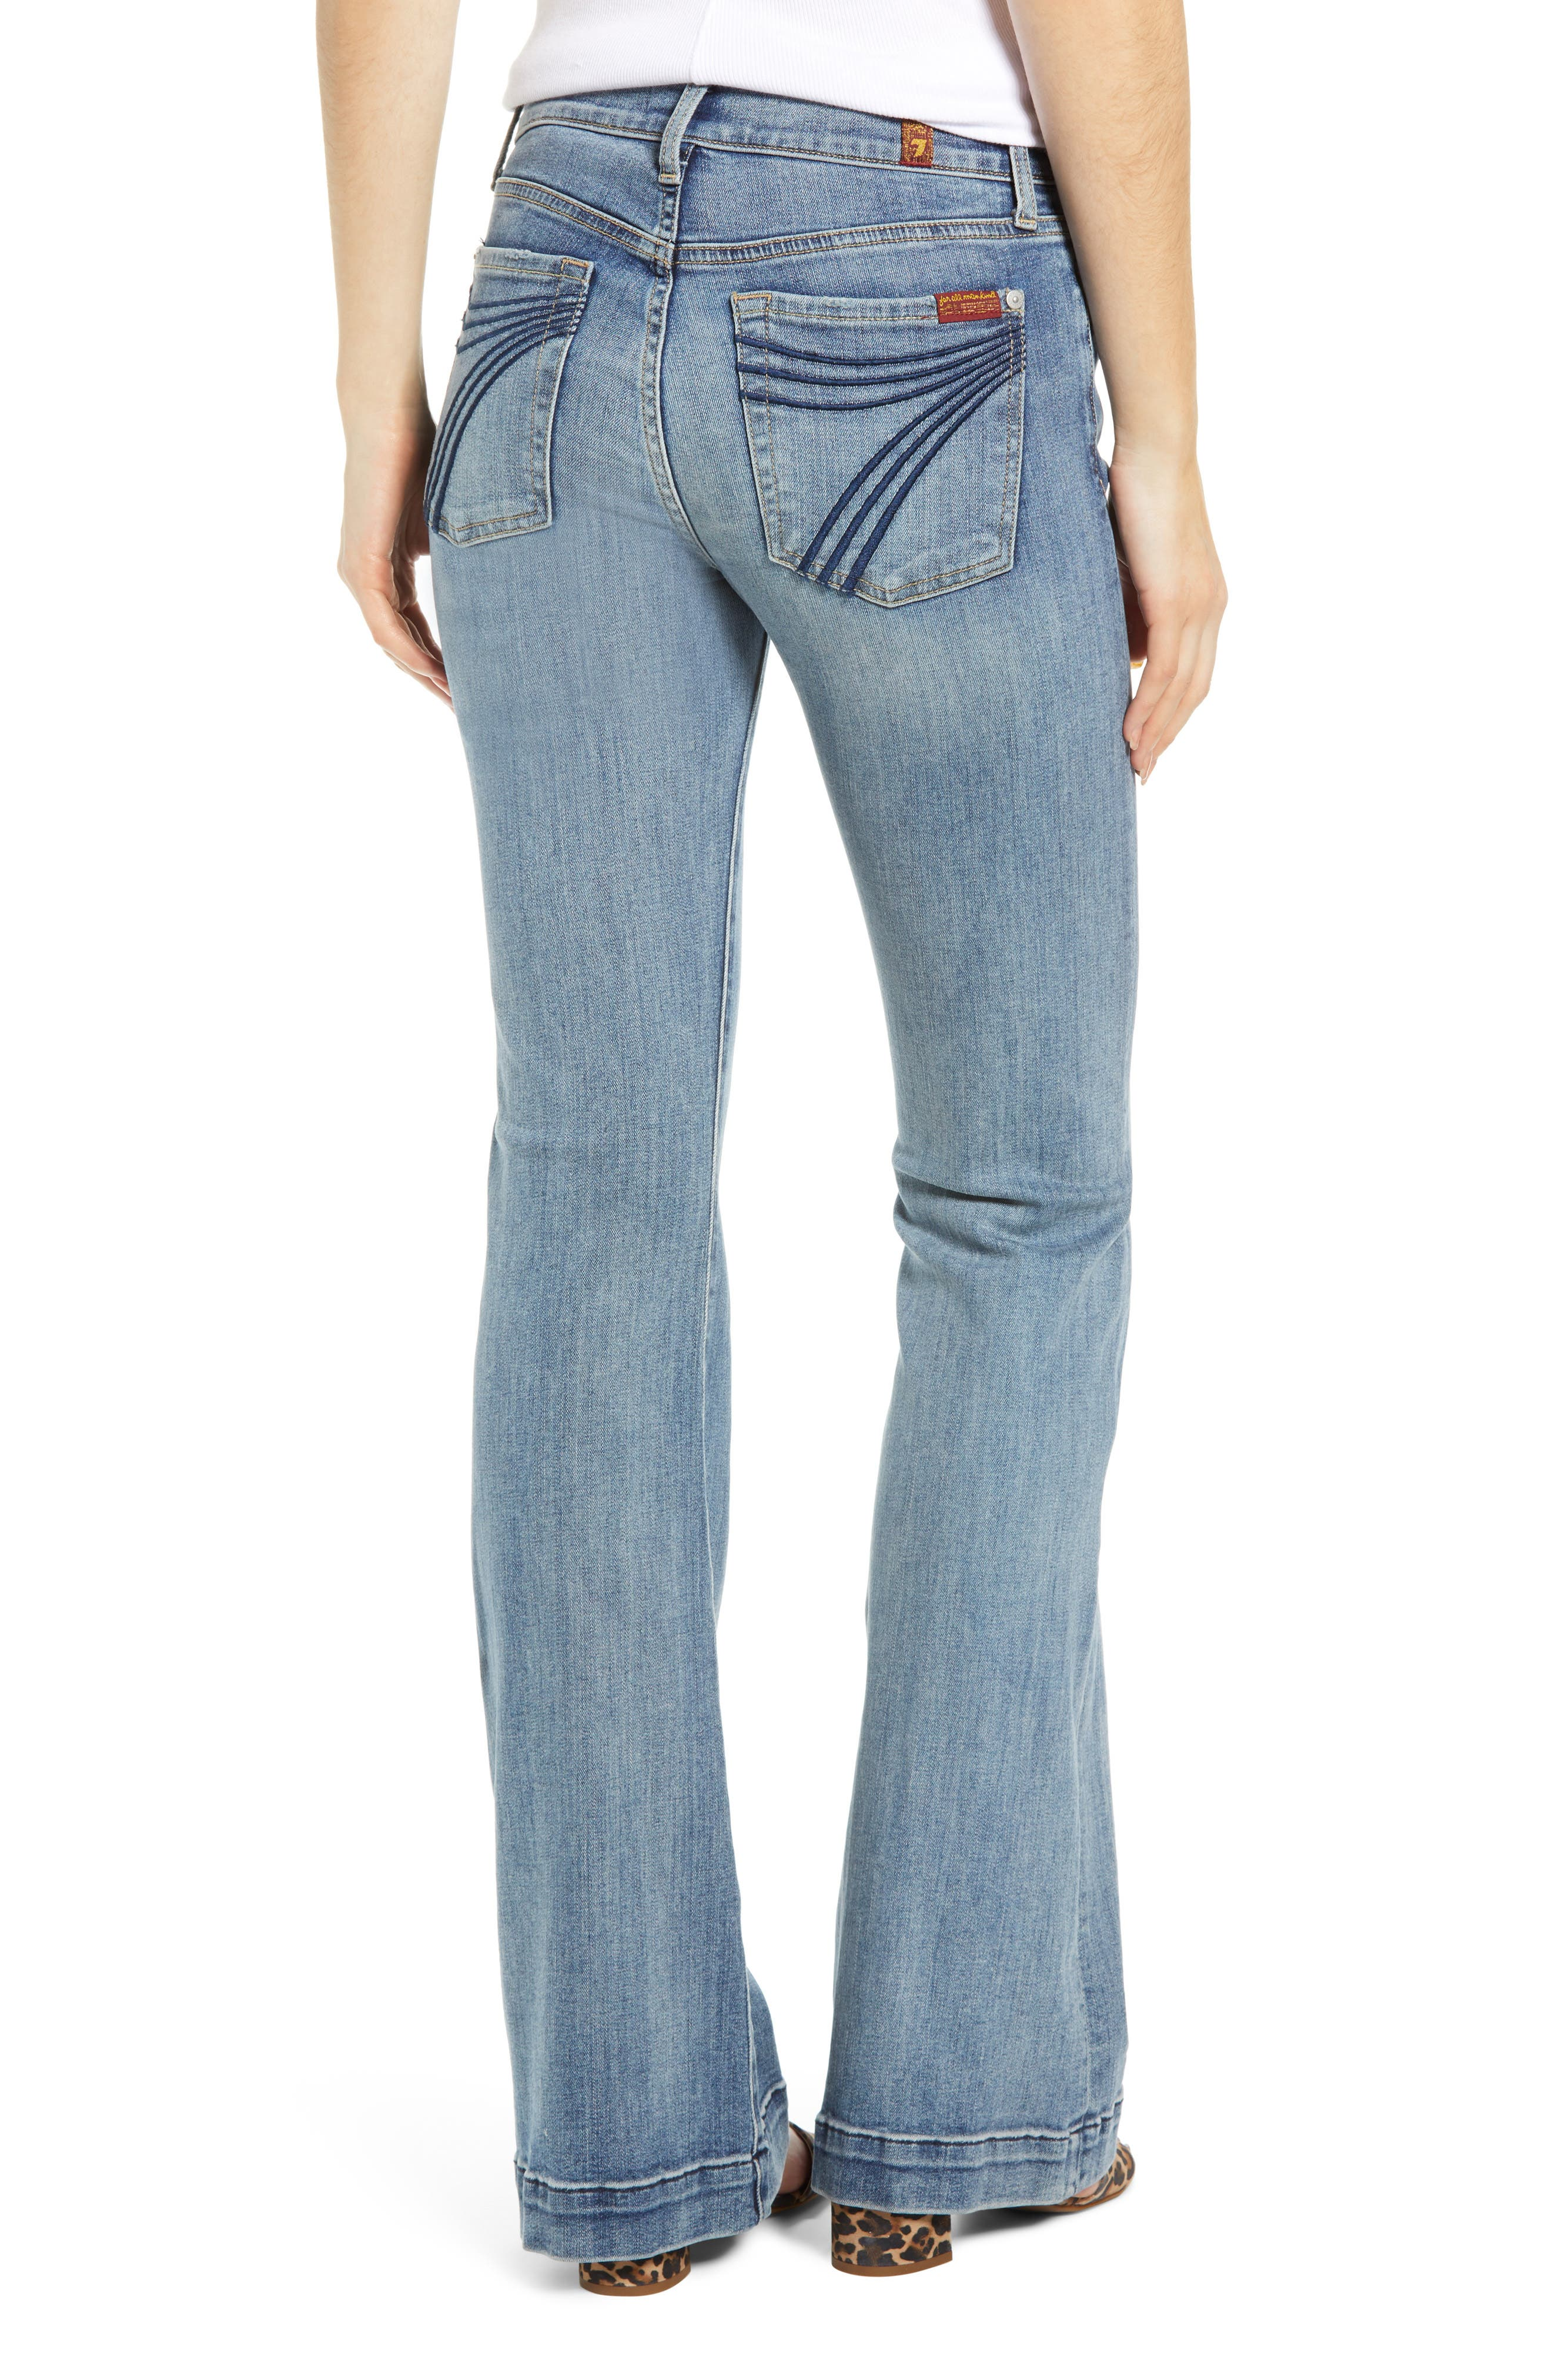 7 FOR ALL MANKIND<SUP>®</SUP>, Dojo Wide Leg Jeans, Alternate thumbnail 2, color, BAIR AUTHENTIC FORTUNE